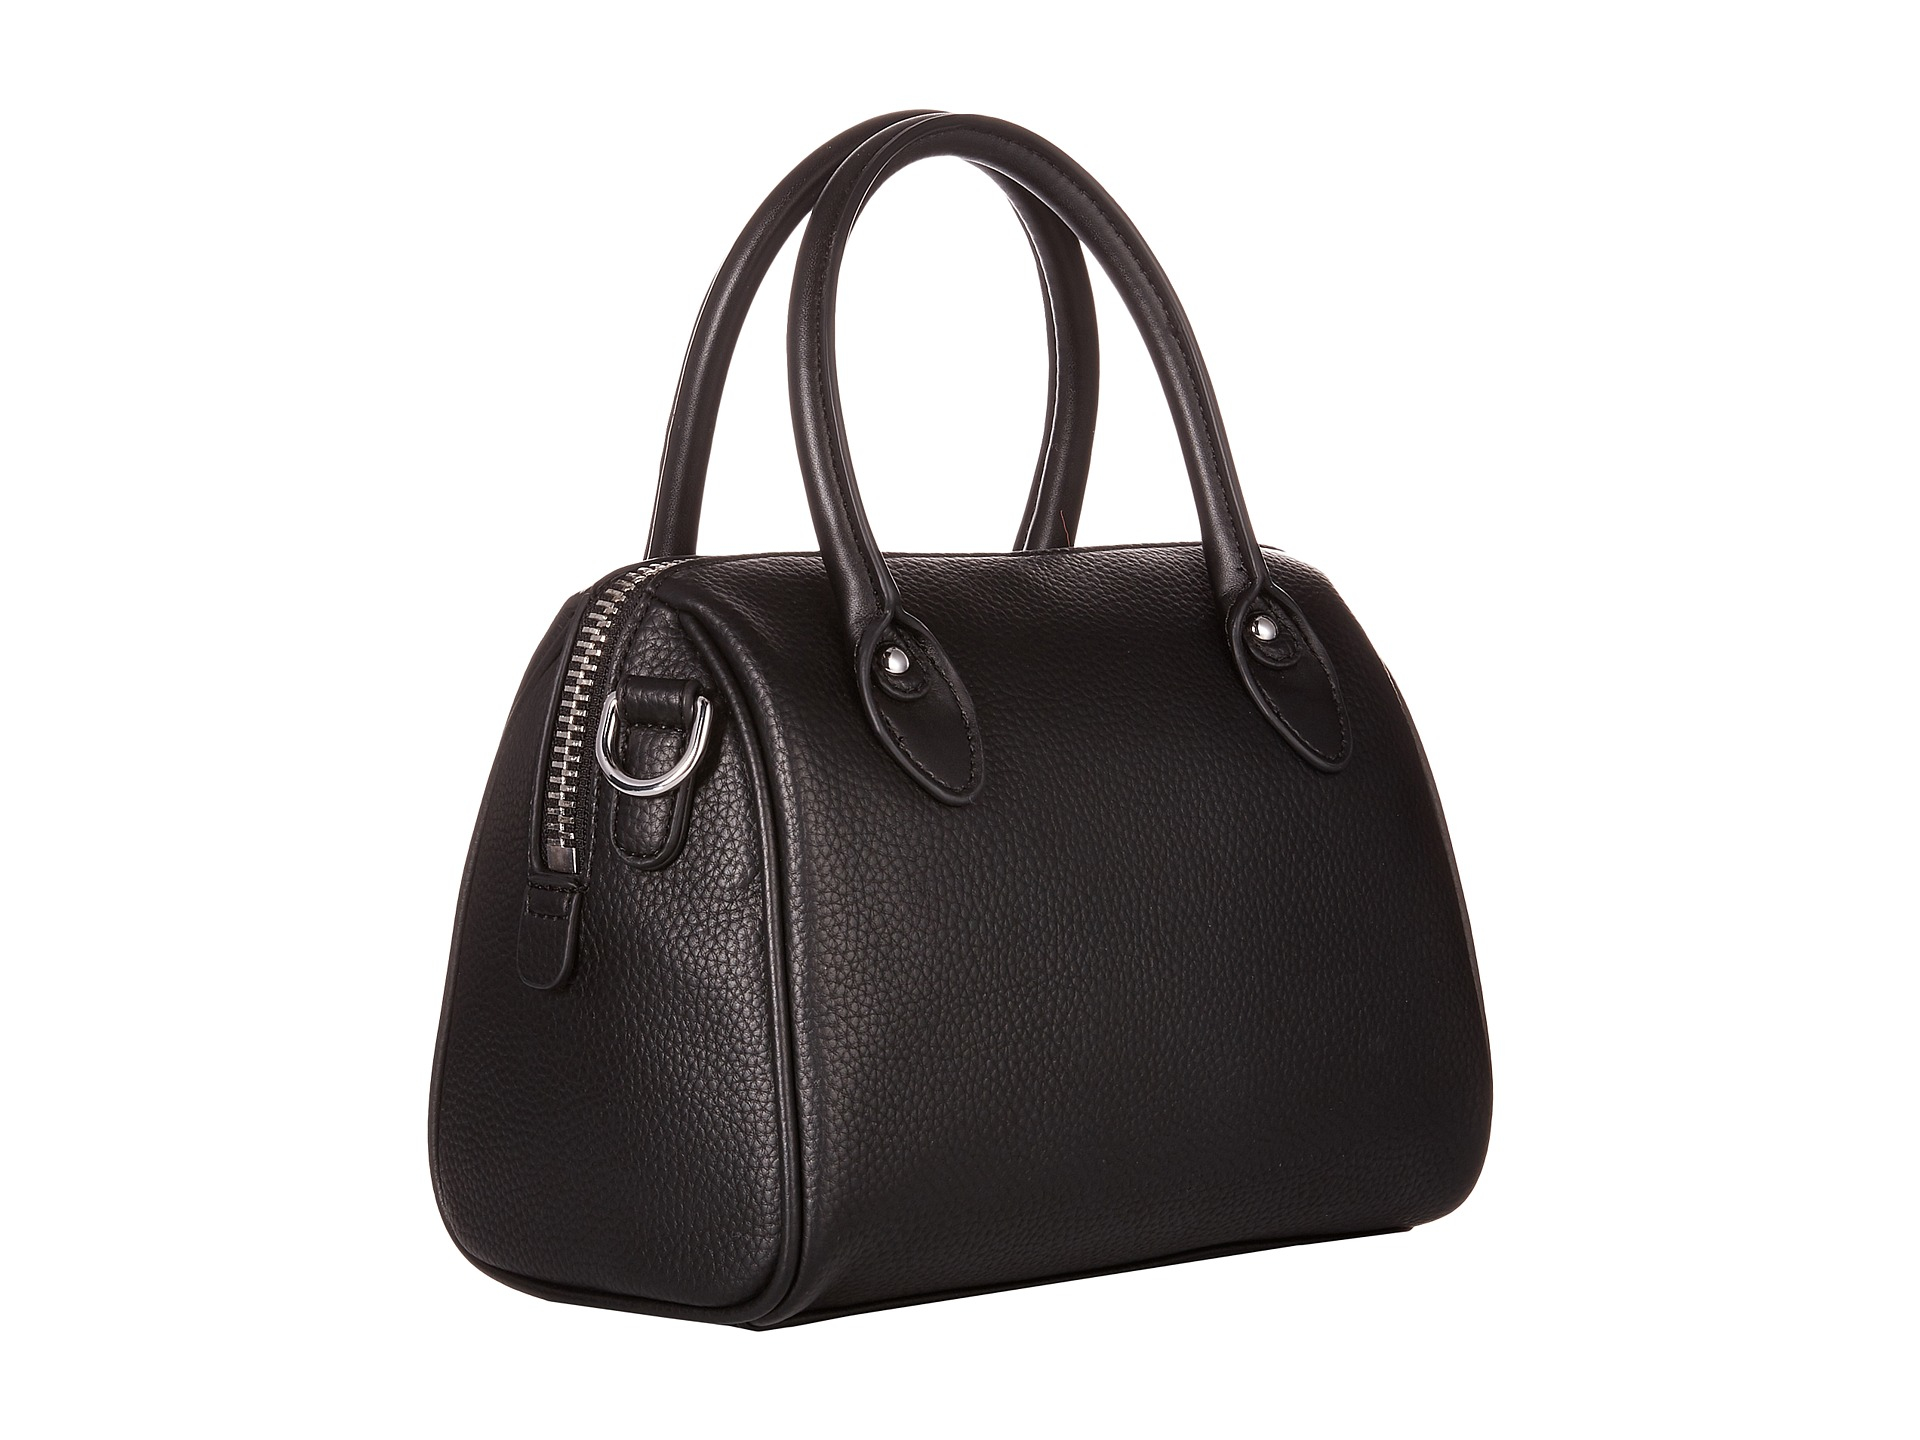 625b0d111300 Lyst - Armani Jeans Small Boston Bag With Tassle Detail in Black